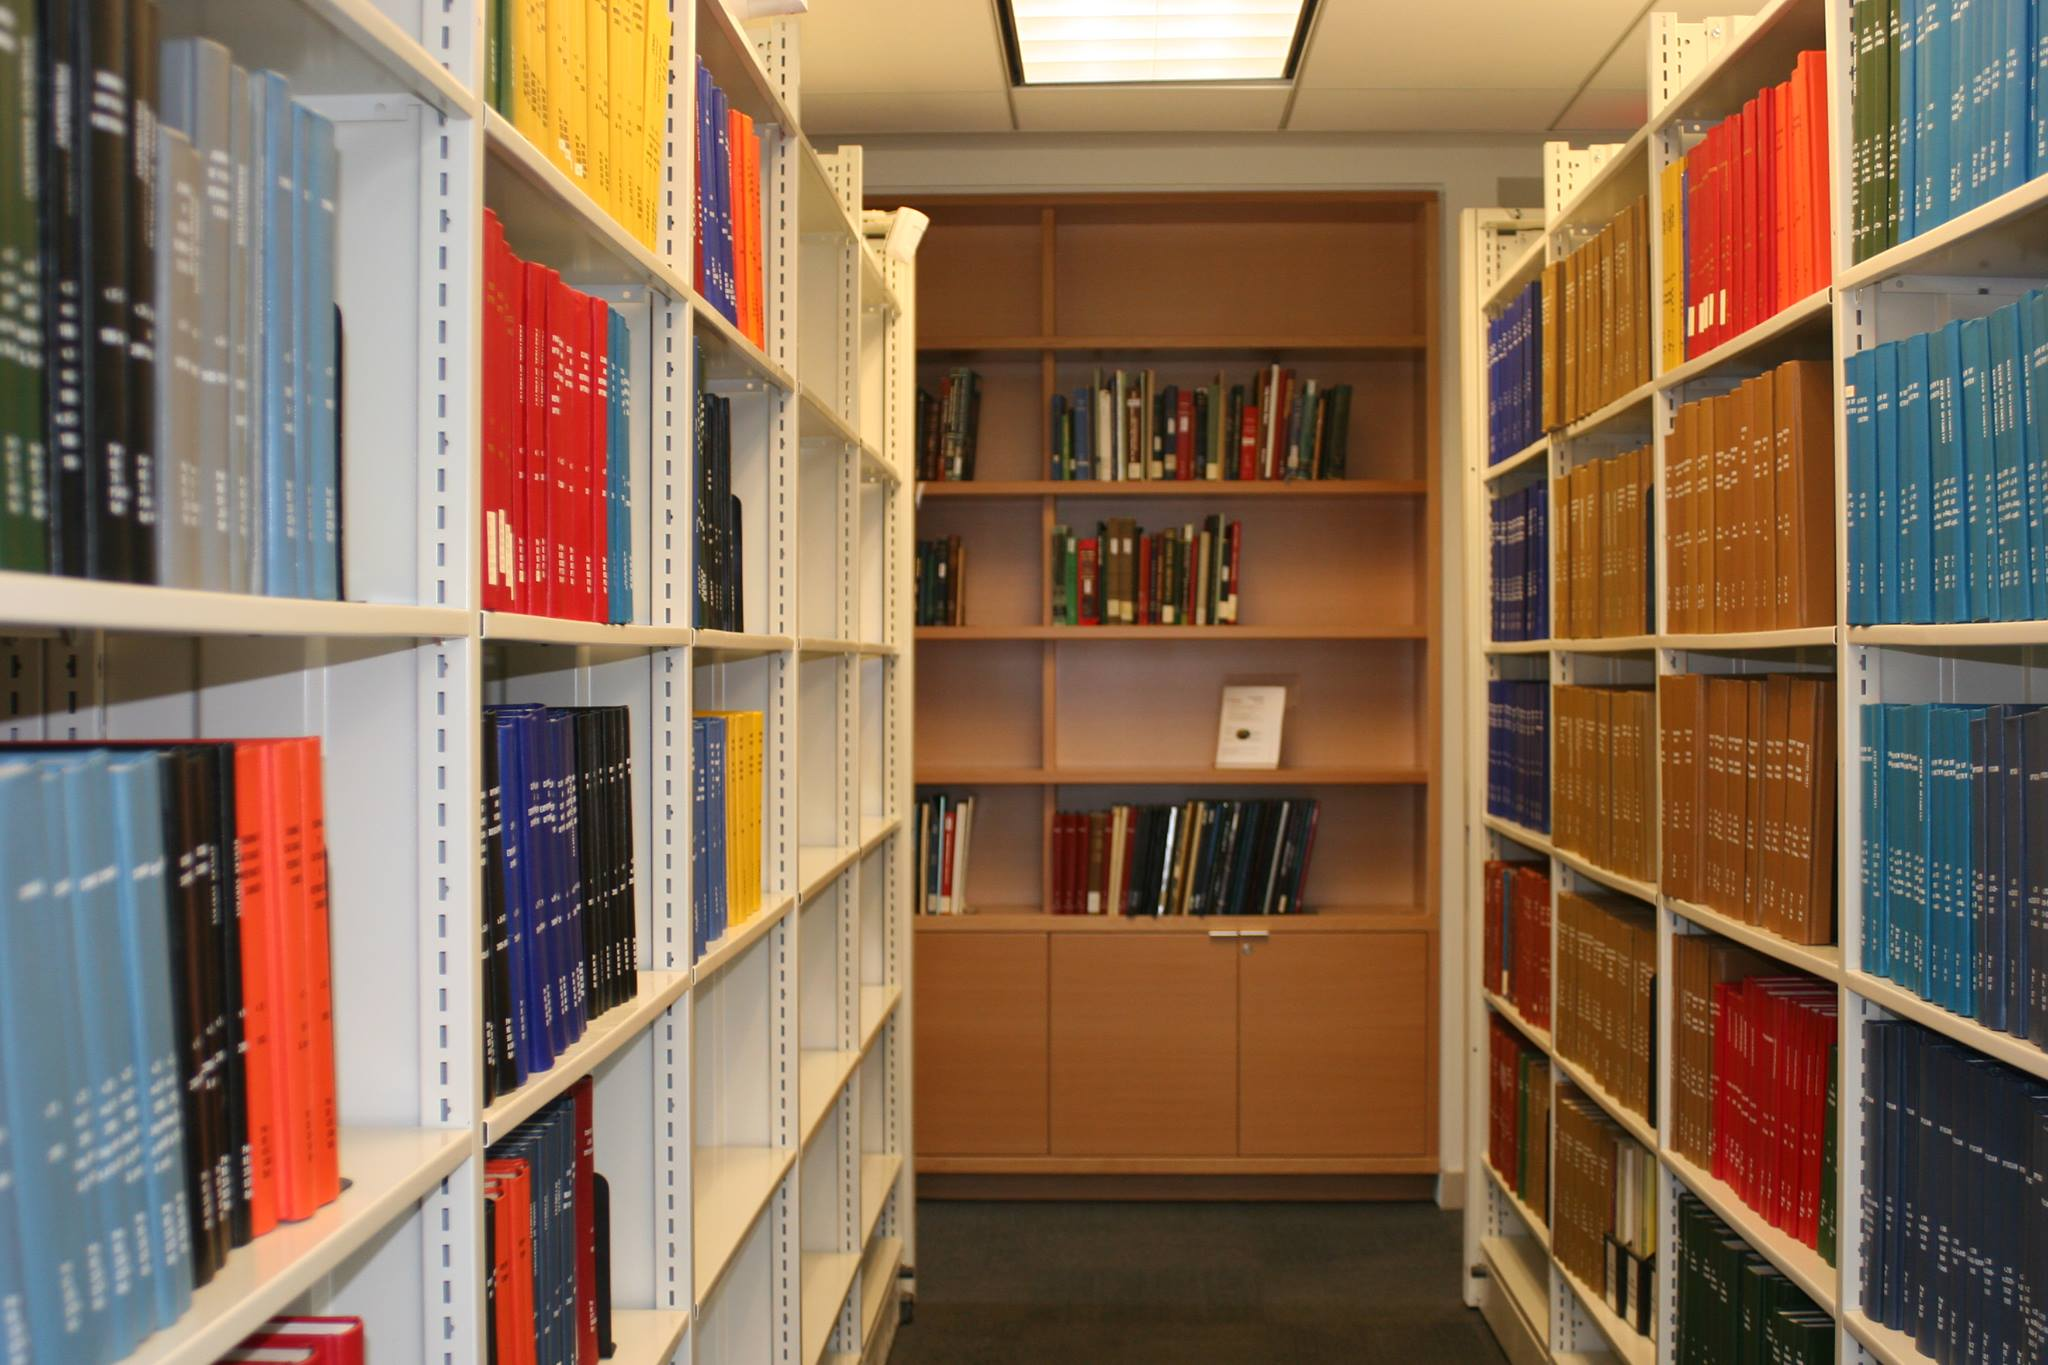 View of the bookshelves in the WLRC